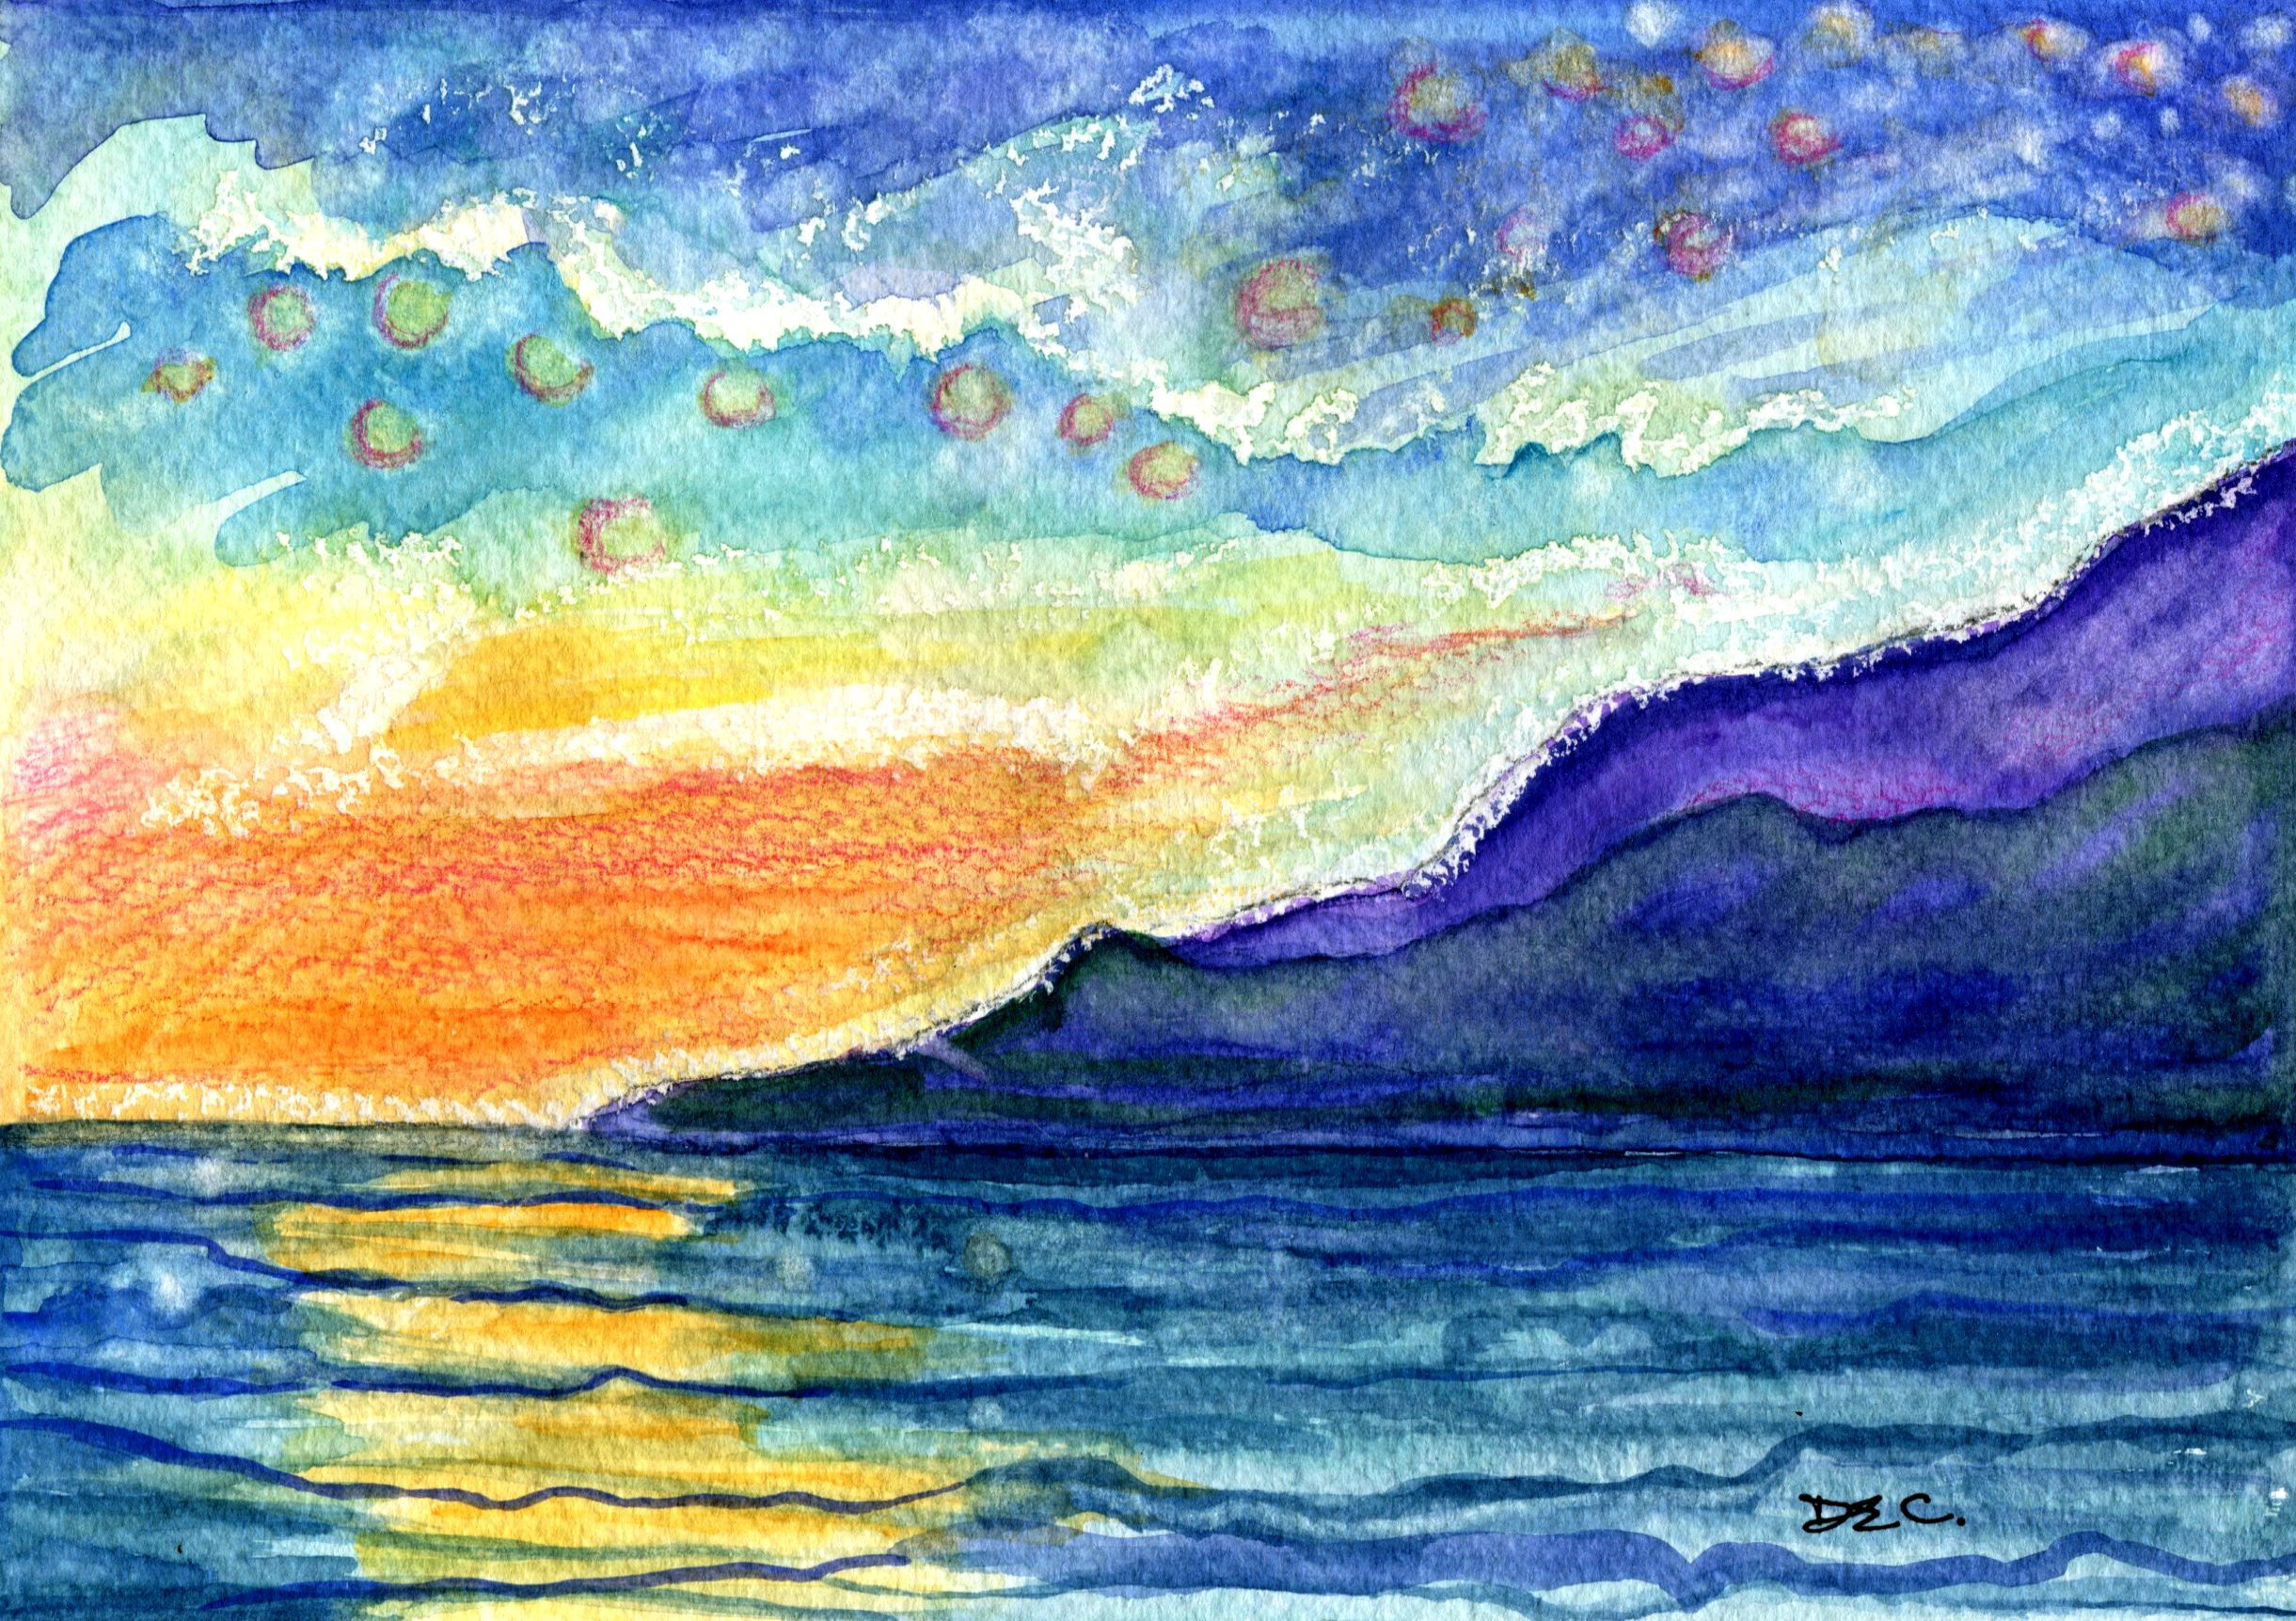 24C, DIANA ELIZABETH CATTELL, SEASIDE SUNSET, WATERCOLOUR ON PAPER